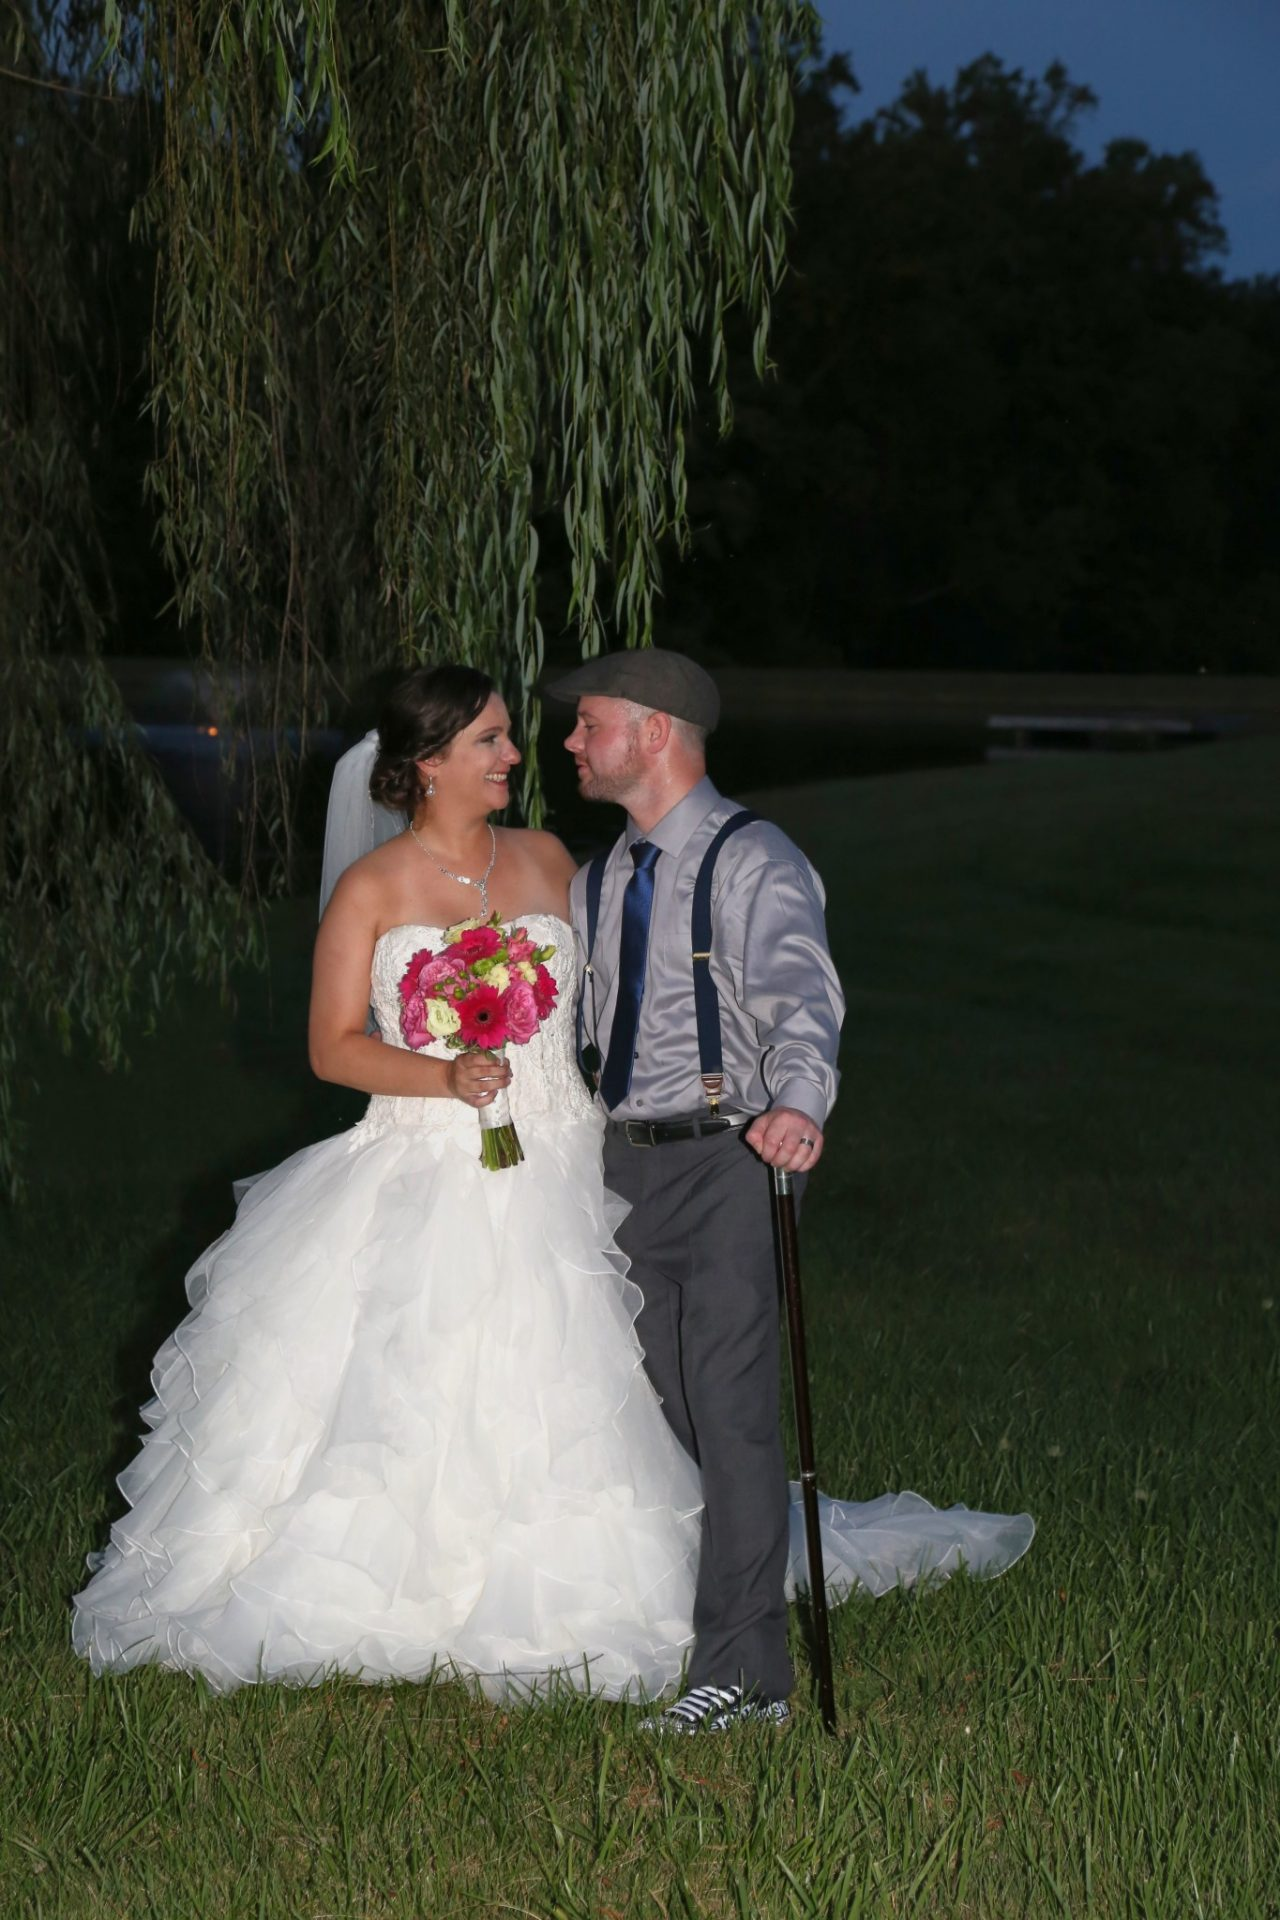 Bride and groom pose by old willow tree by pond.